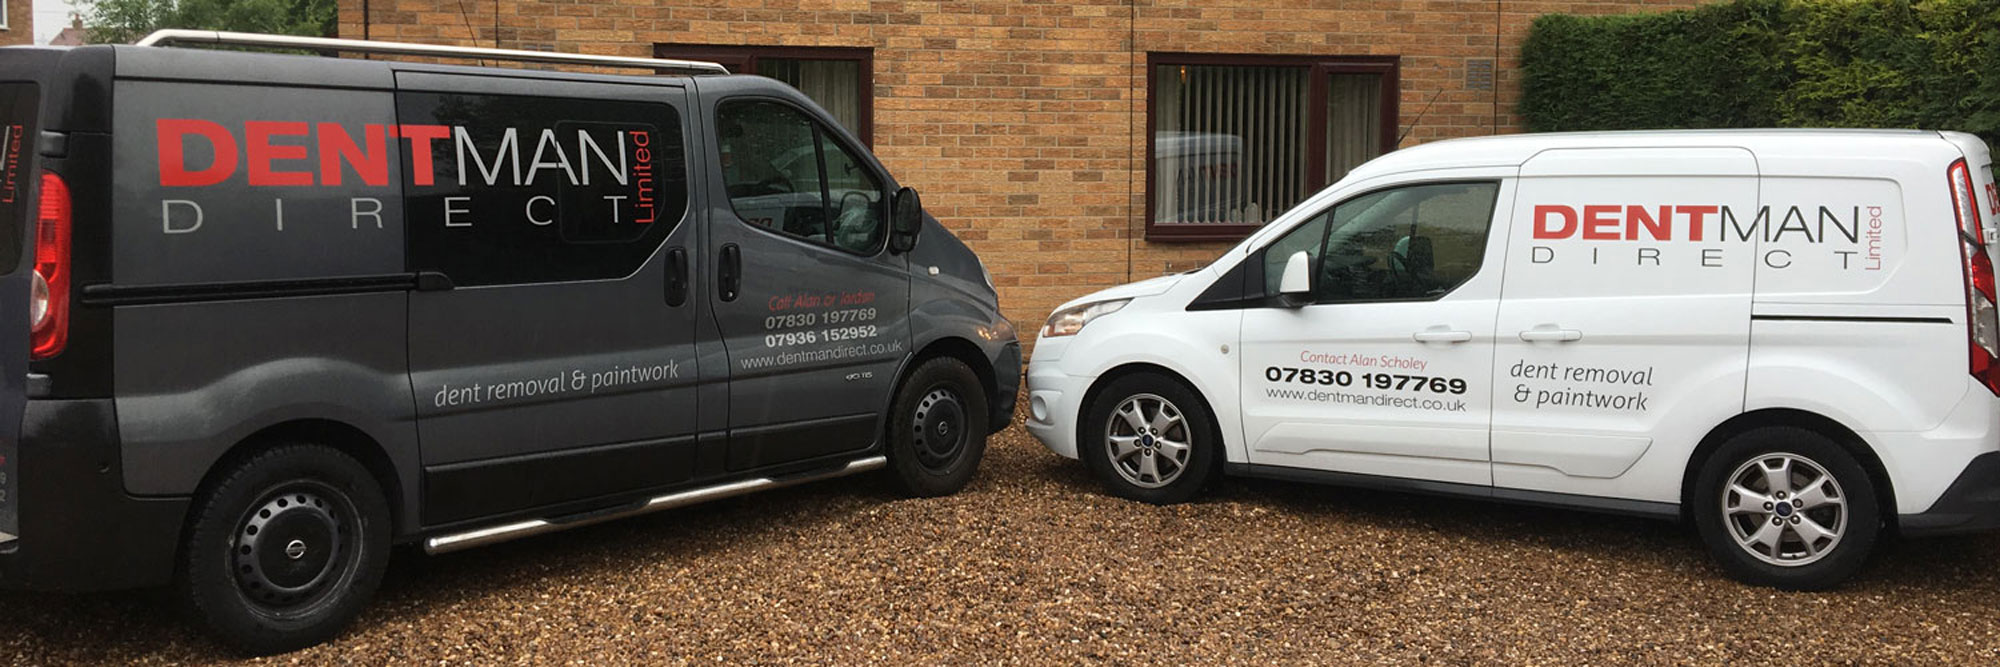 Dentman Direct   High Quality Vehicle Dent Removal & Paintwork   Based in Doncaster